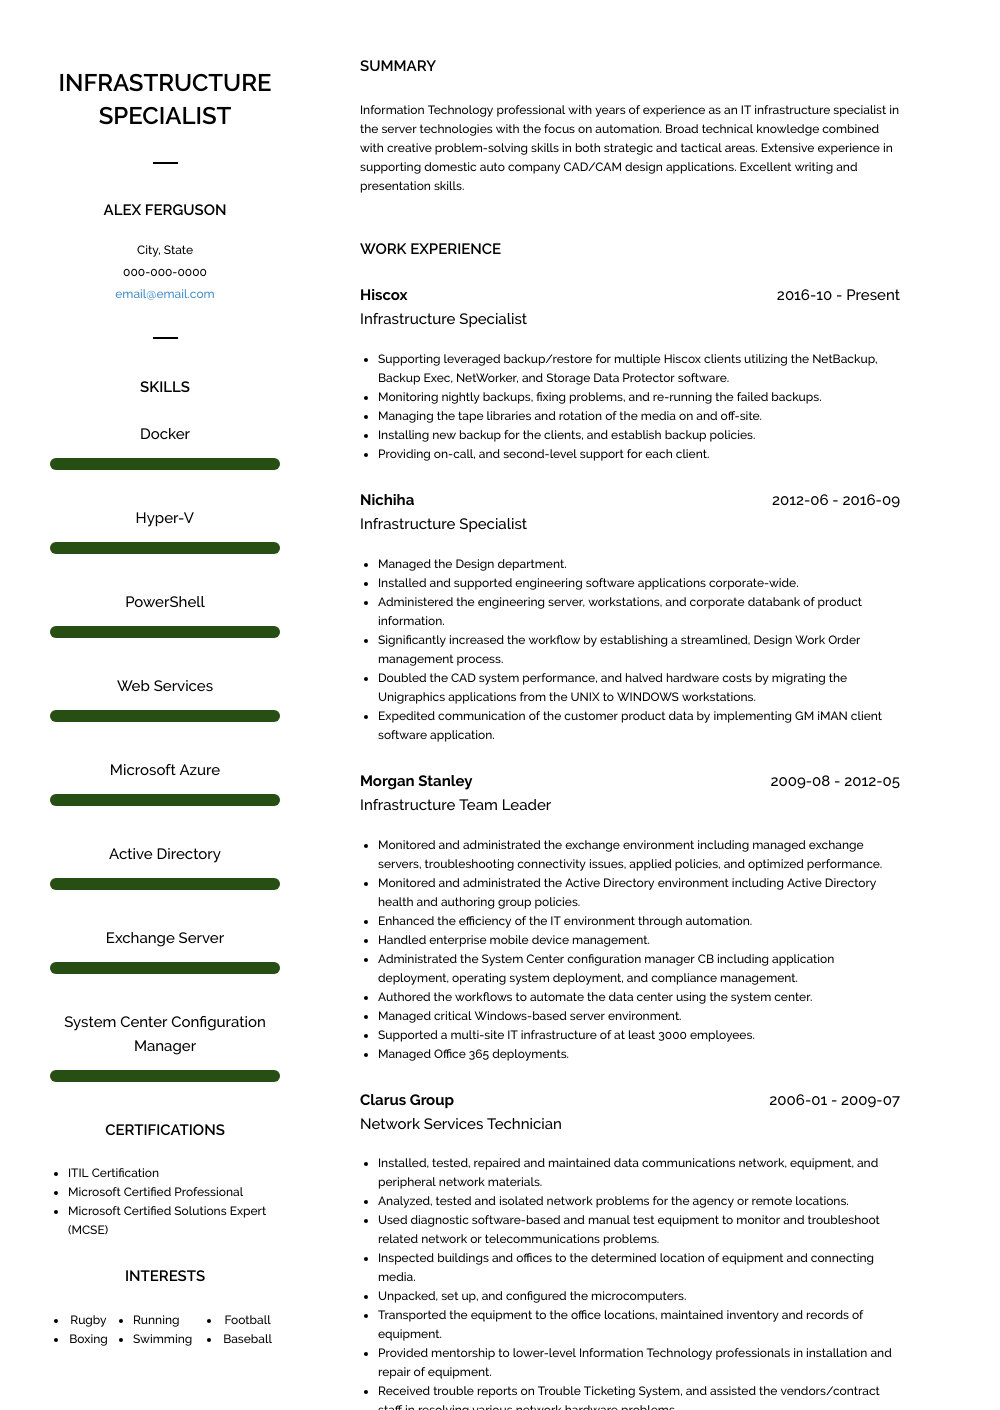 Infrastructure Specialist Resume Sample and Template